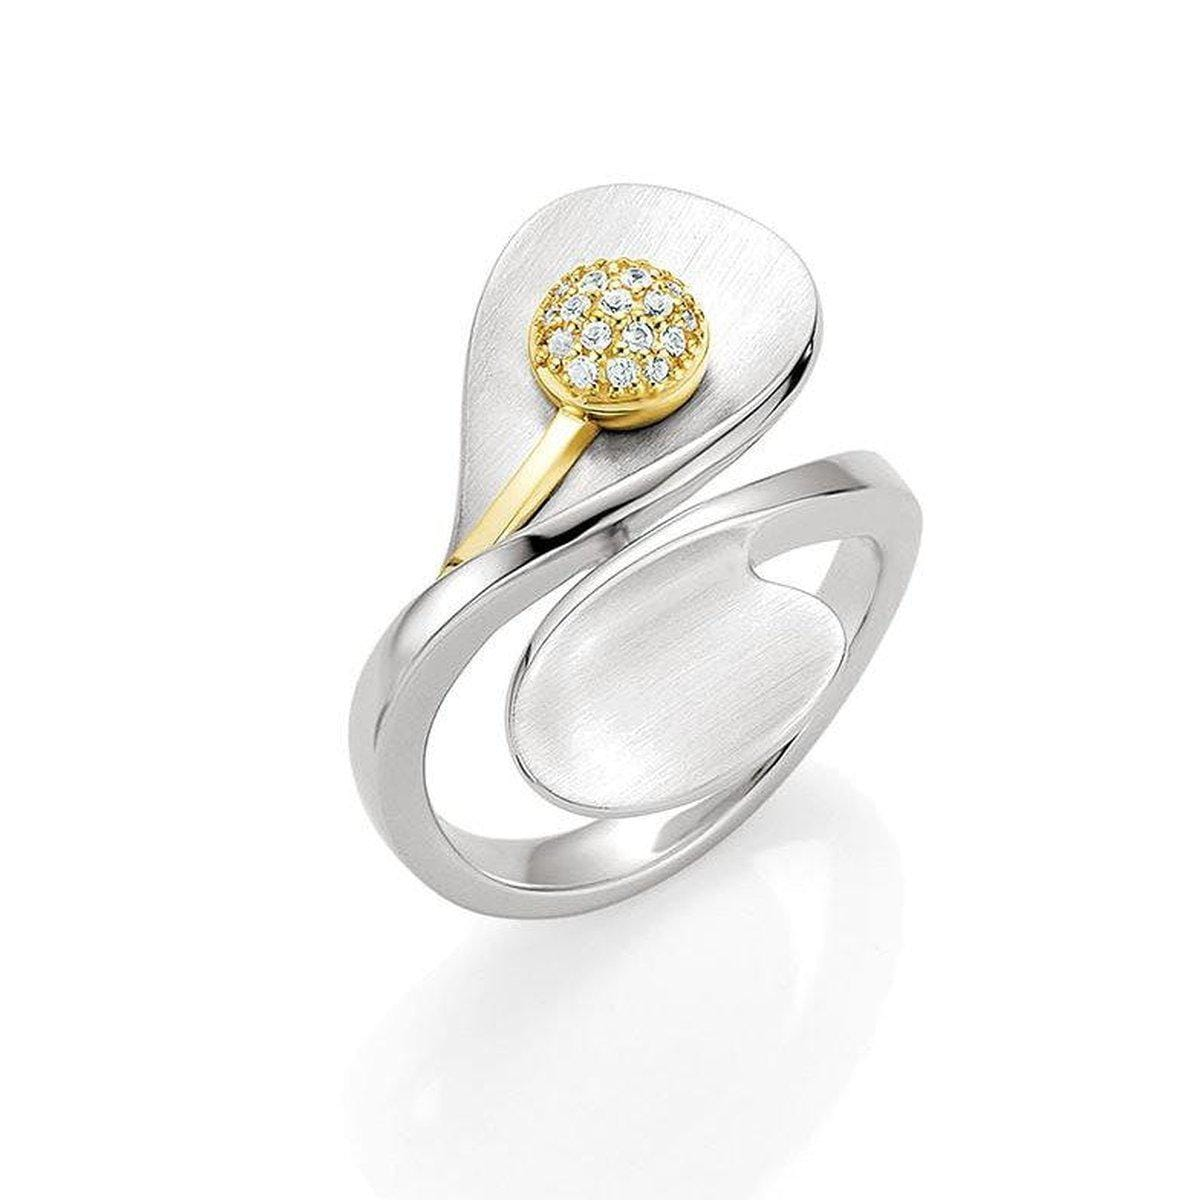 Yellow Gold Plated Sterling Silver White Sapphire Ring - 42/03222-Breuning-Renee Taylor Gallery